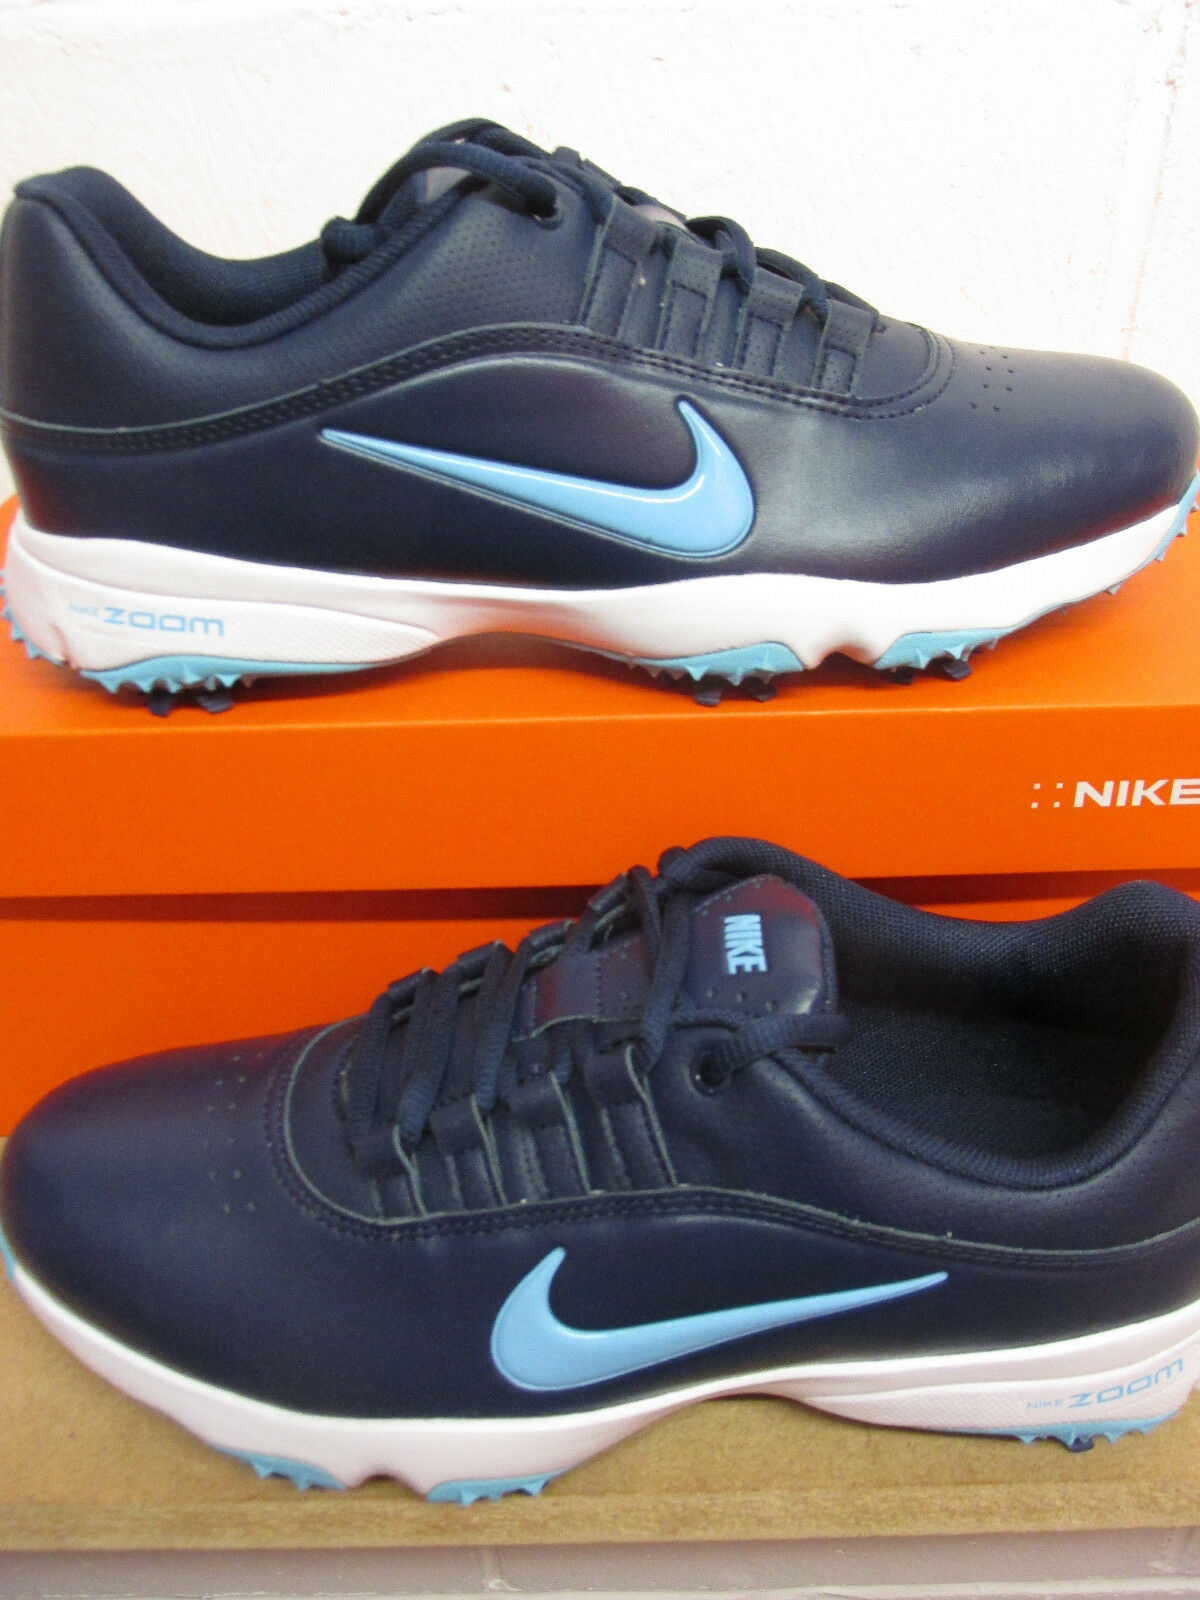 Nike Air Zoom Rival 5 Mens Golf Shoes 878957 400 Trainers Sneakers